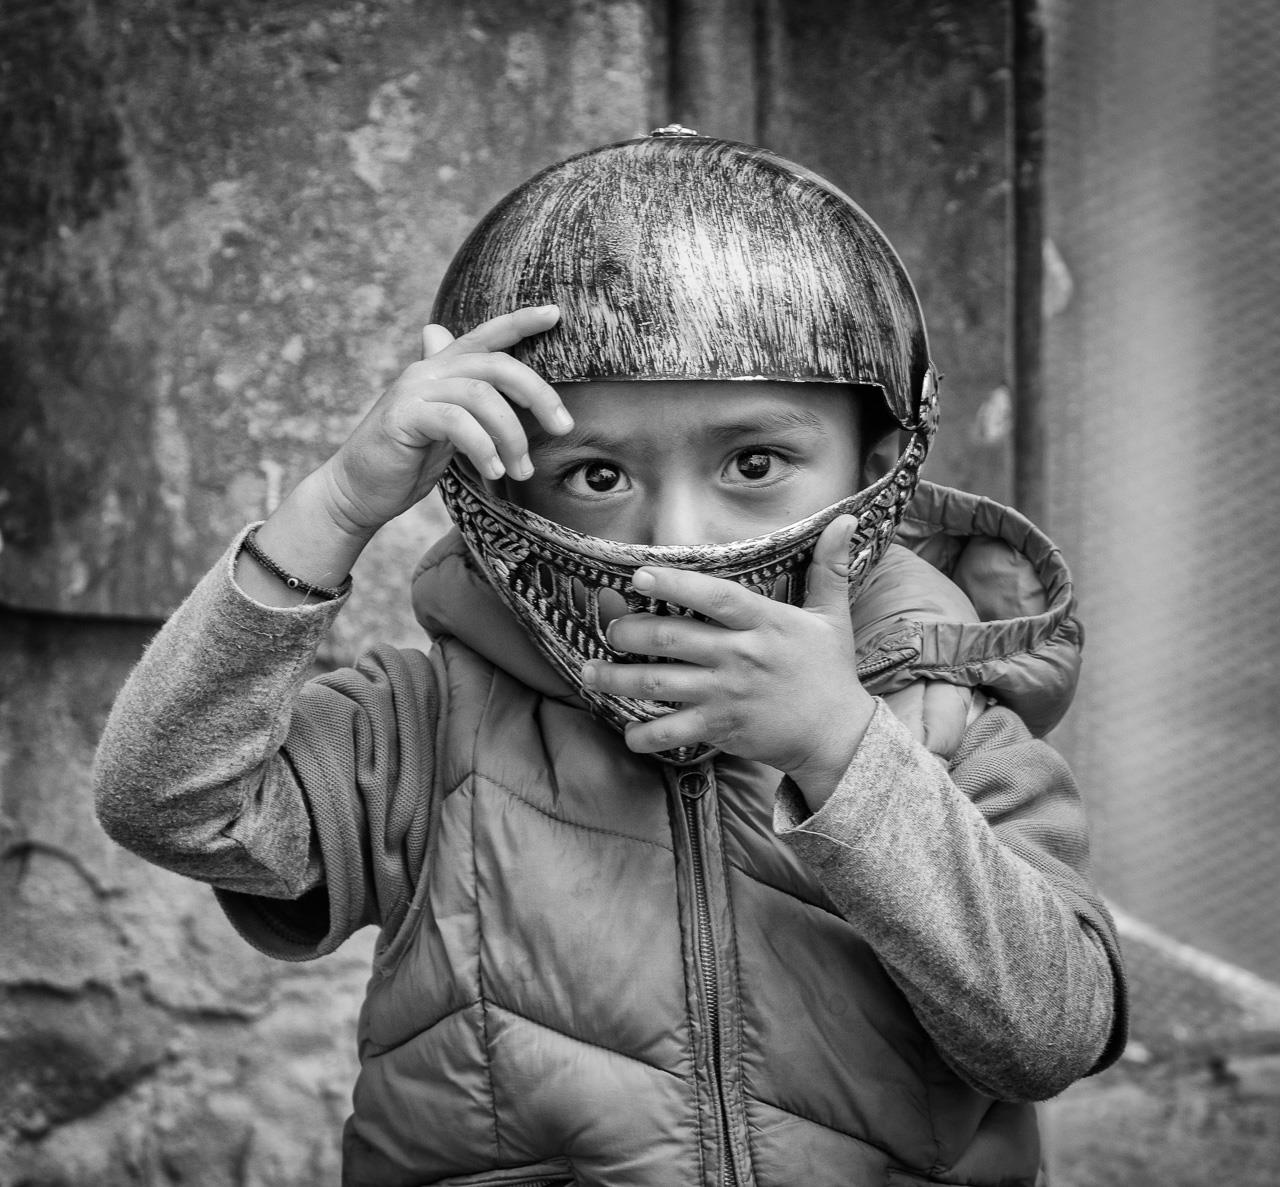 Gladiator Eyes, © Michael McGinnis, Westminster, Colorado, Santa Fe Photographic